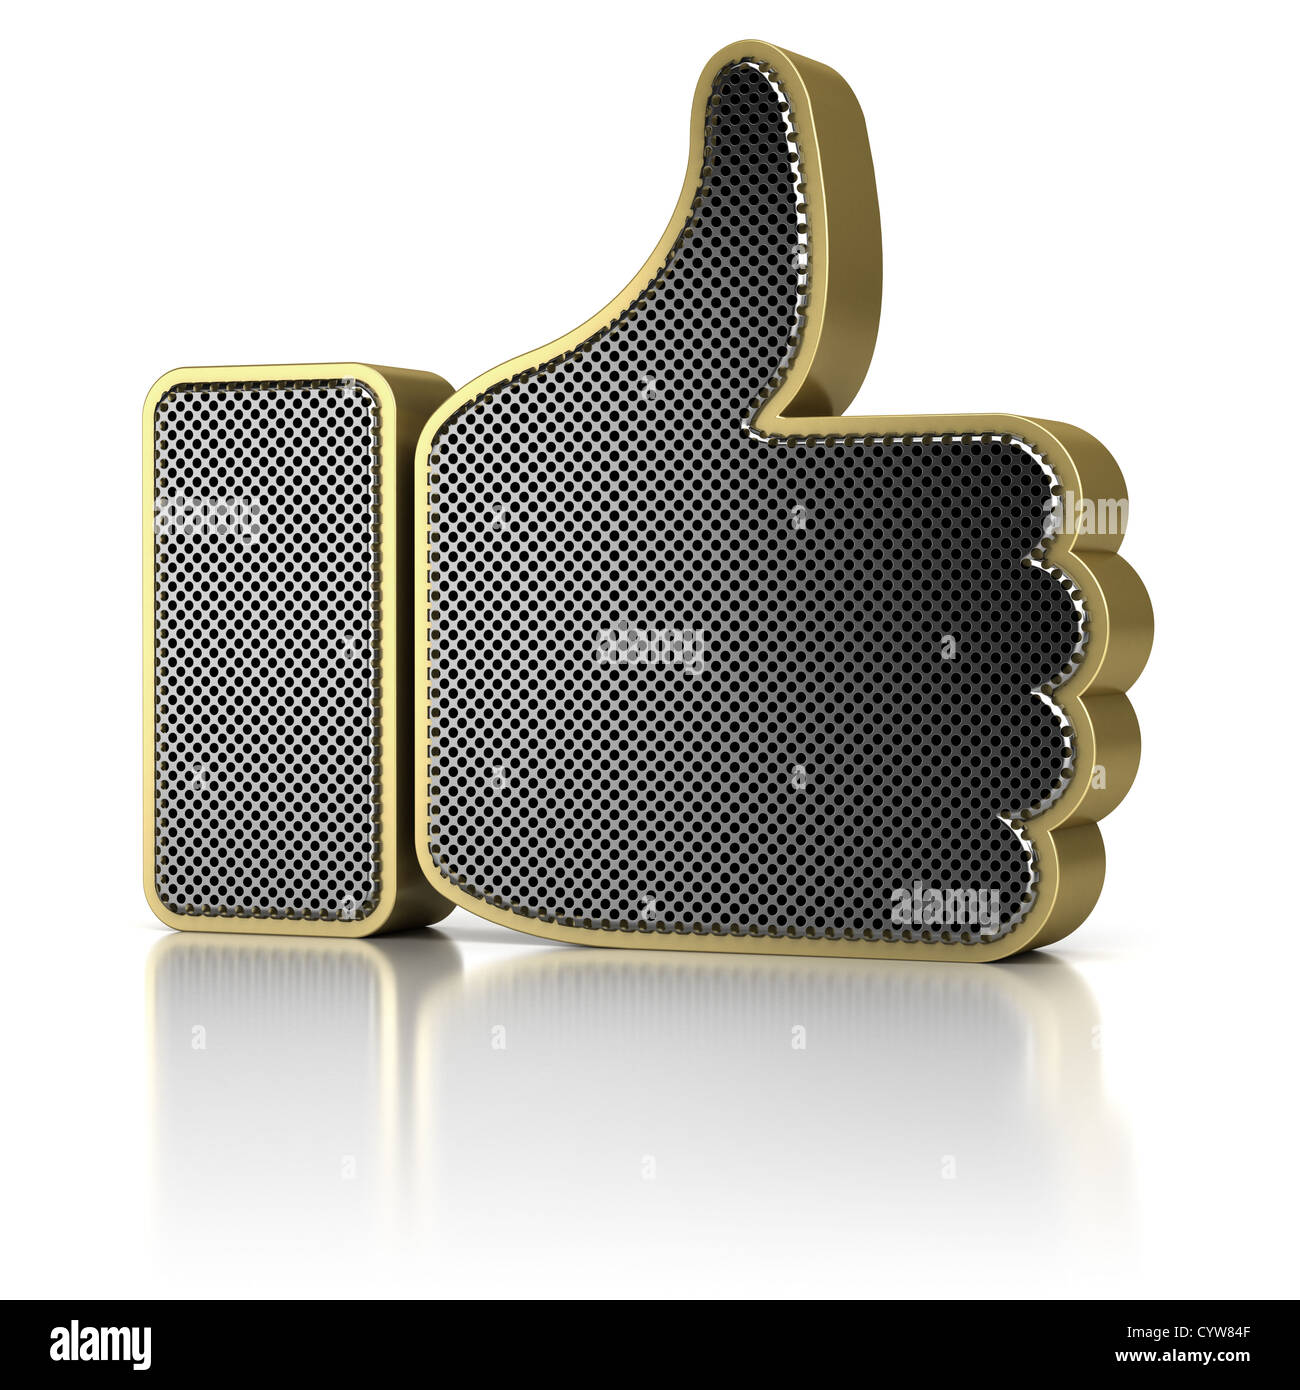 Thumbs up - Stock Image